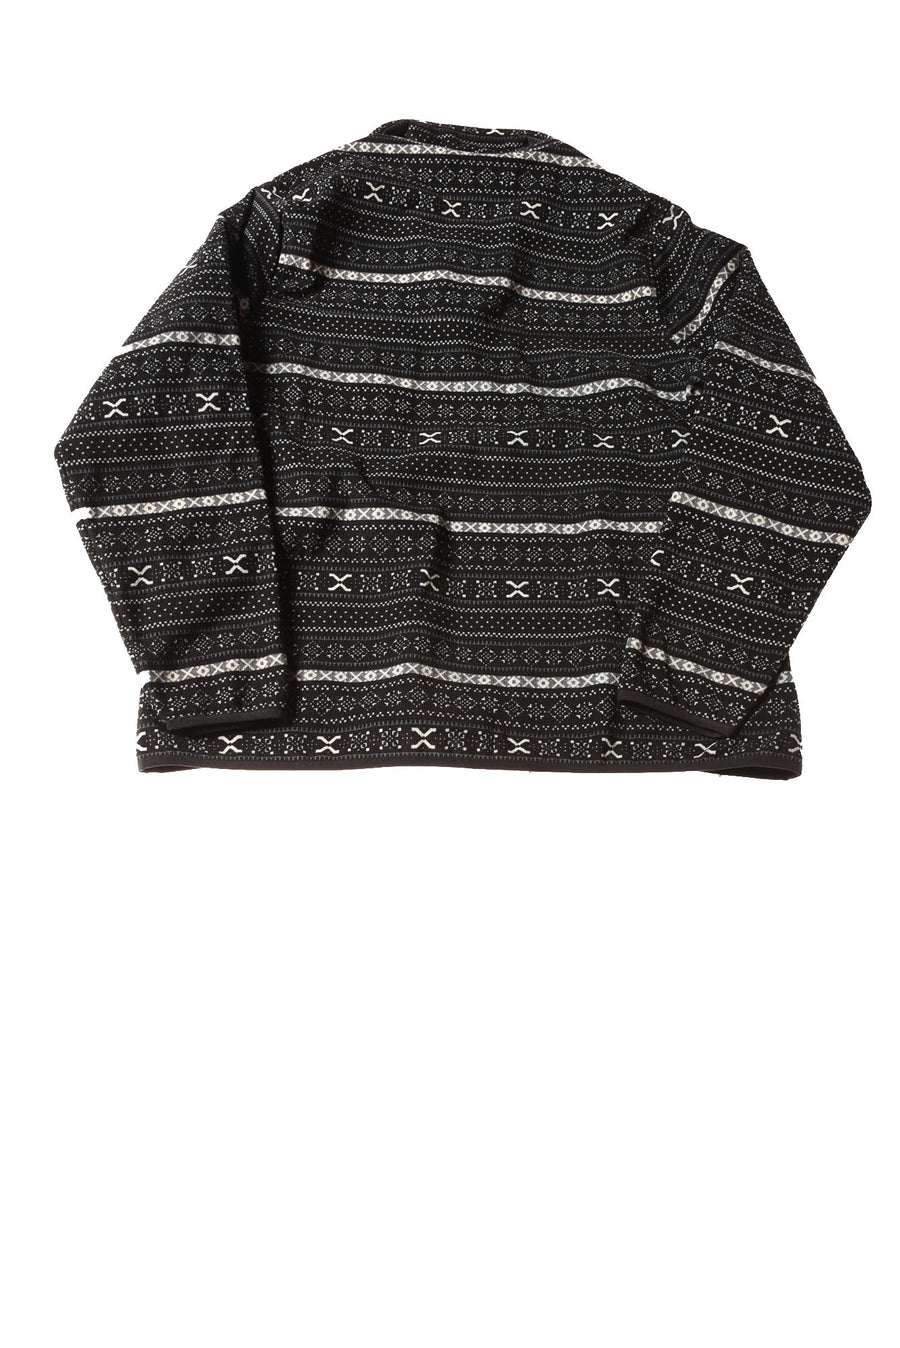 NEW Jachs Men's Sweater Medium Black & White